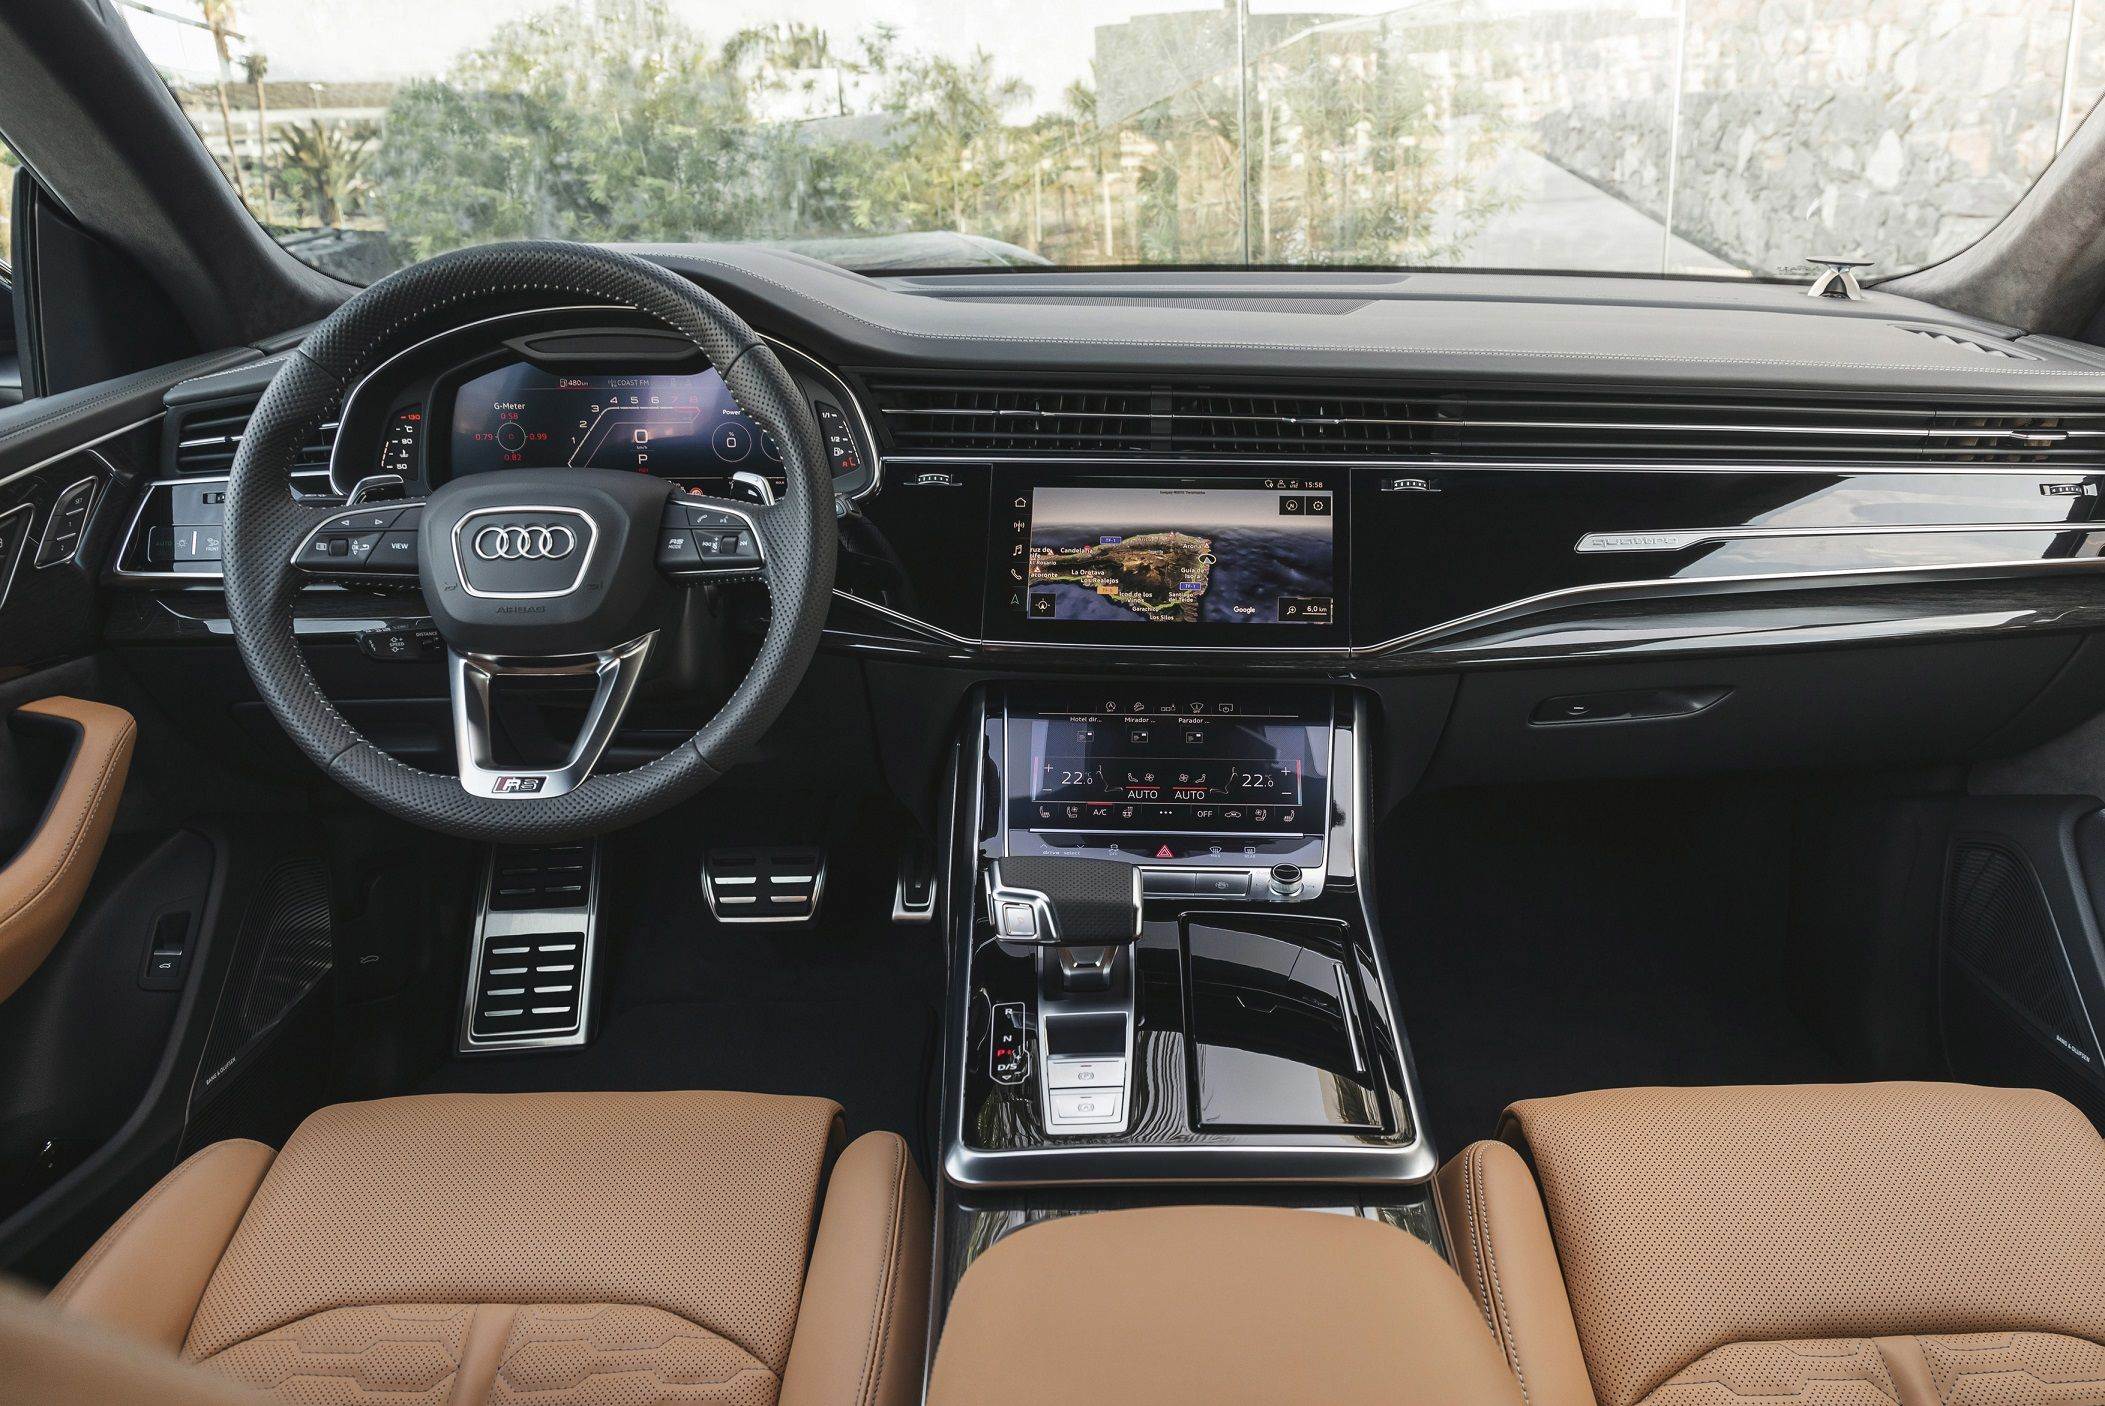 Features as standard in the RS Q8 include all-wheel steering, RS roof spoiler, Audi's Virtual cockpit, quattro with self locking differential, Sport Adaptive Air Suspension and 2 RS modes for personalized drive settings.